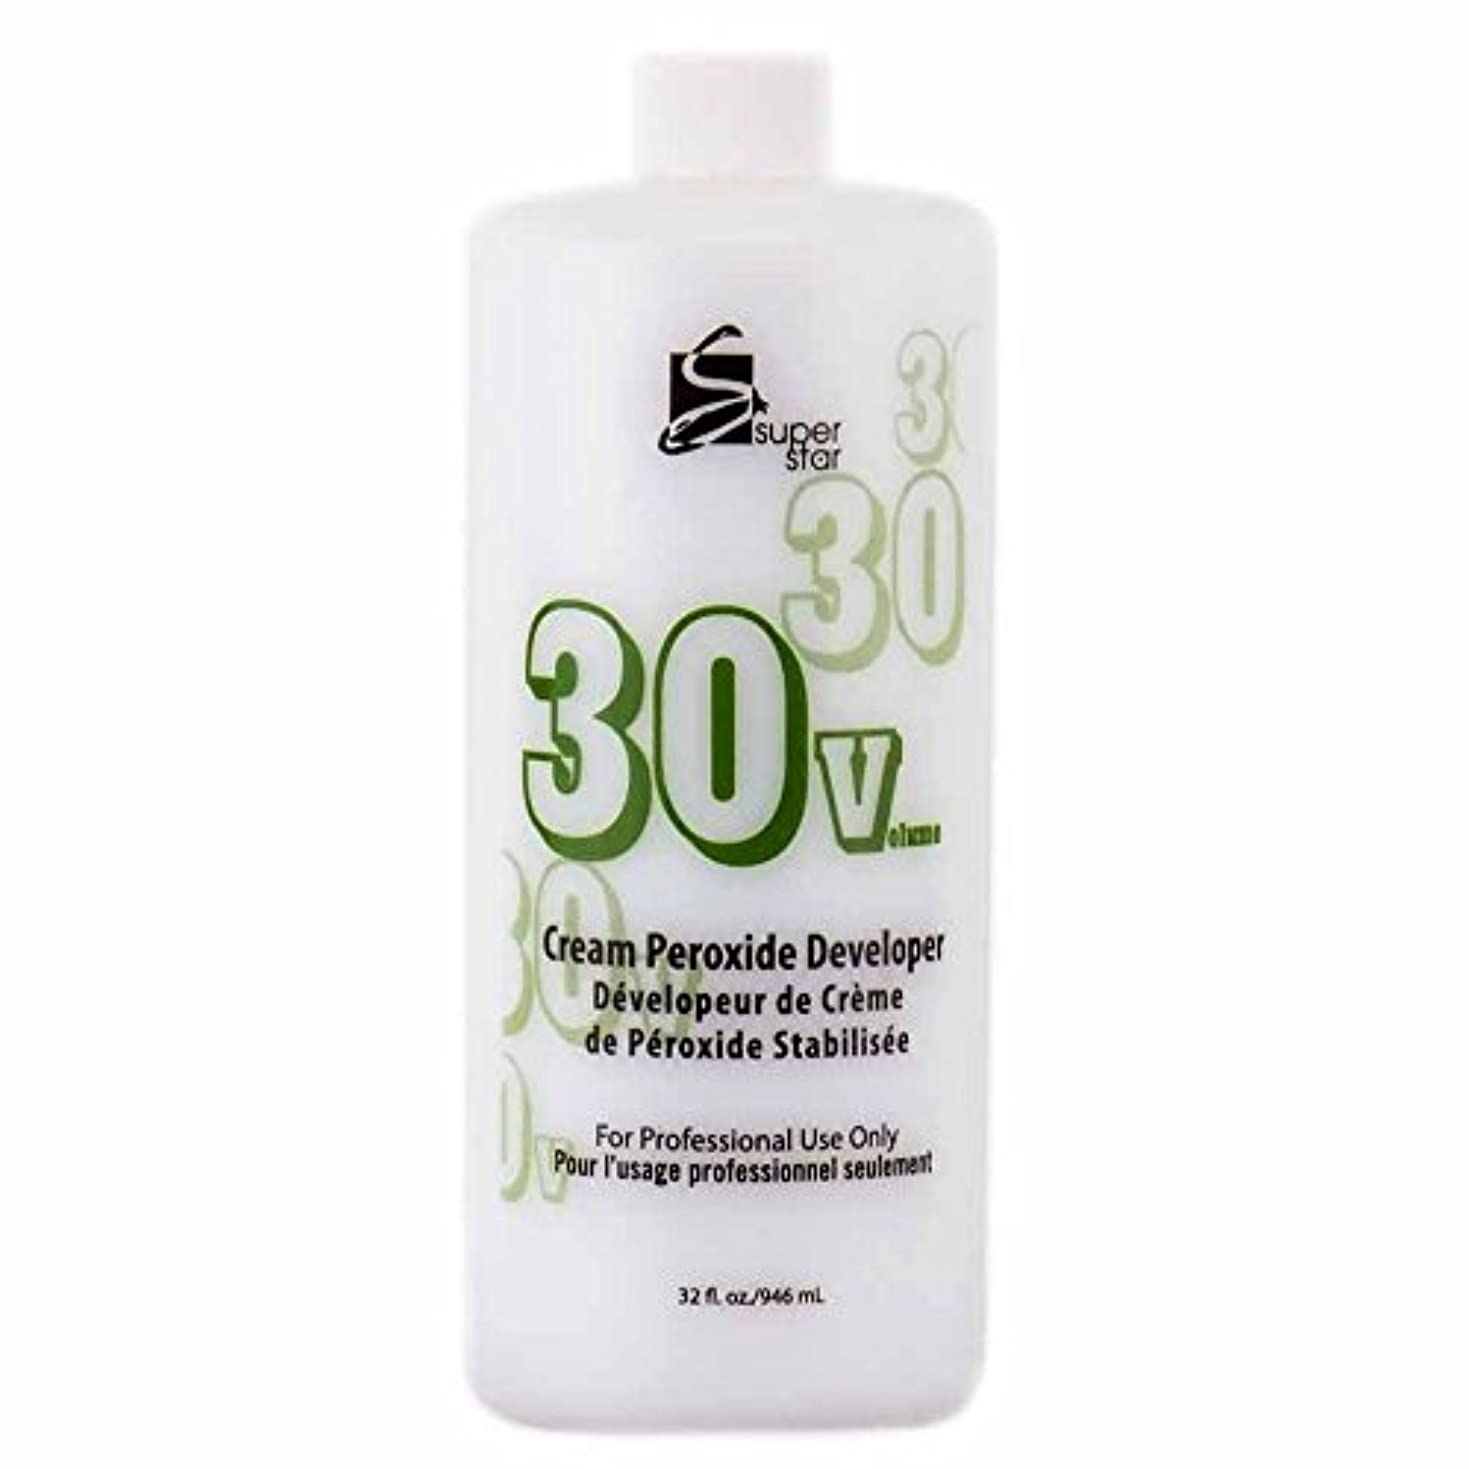 潜む食器棚フラグラントSUPER STAR Stabilized Cream Peroxide Developer 30V HC-50303 by Superstar